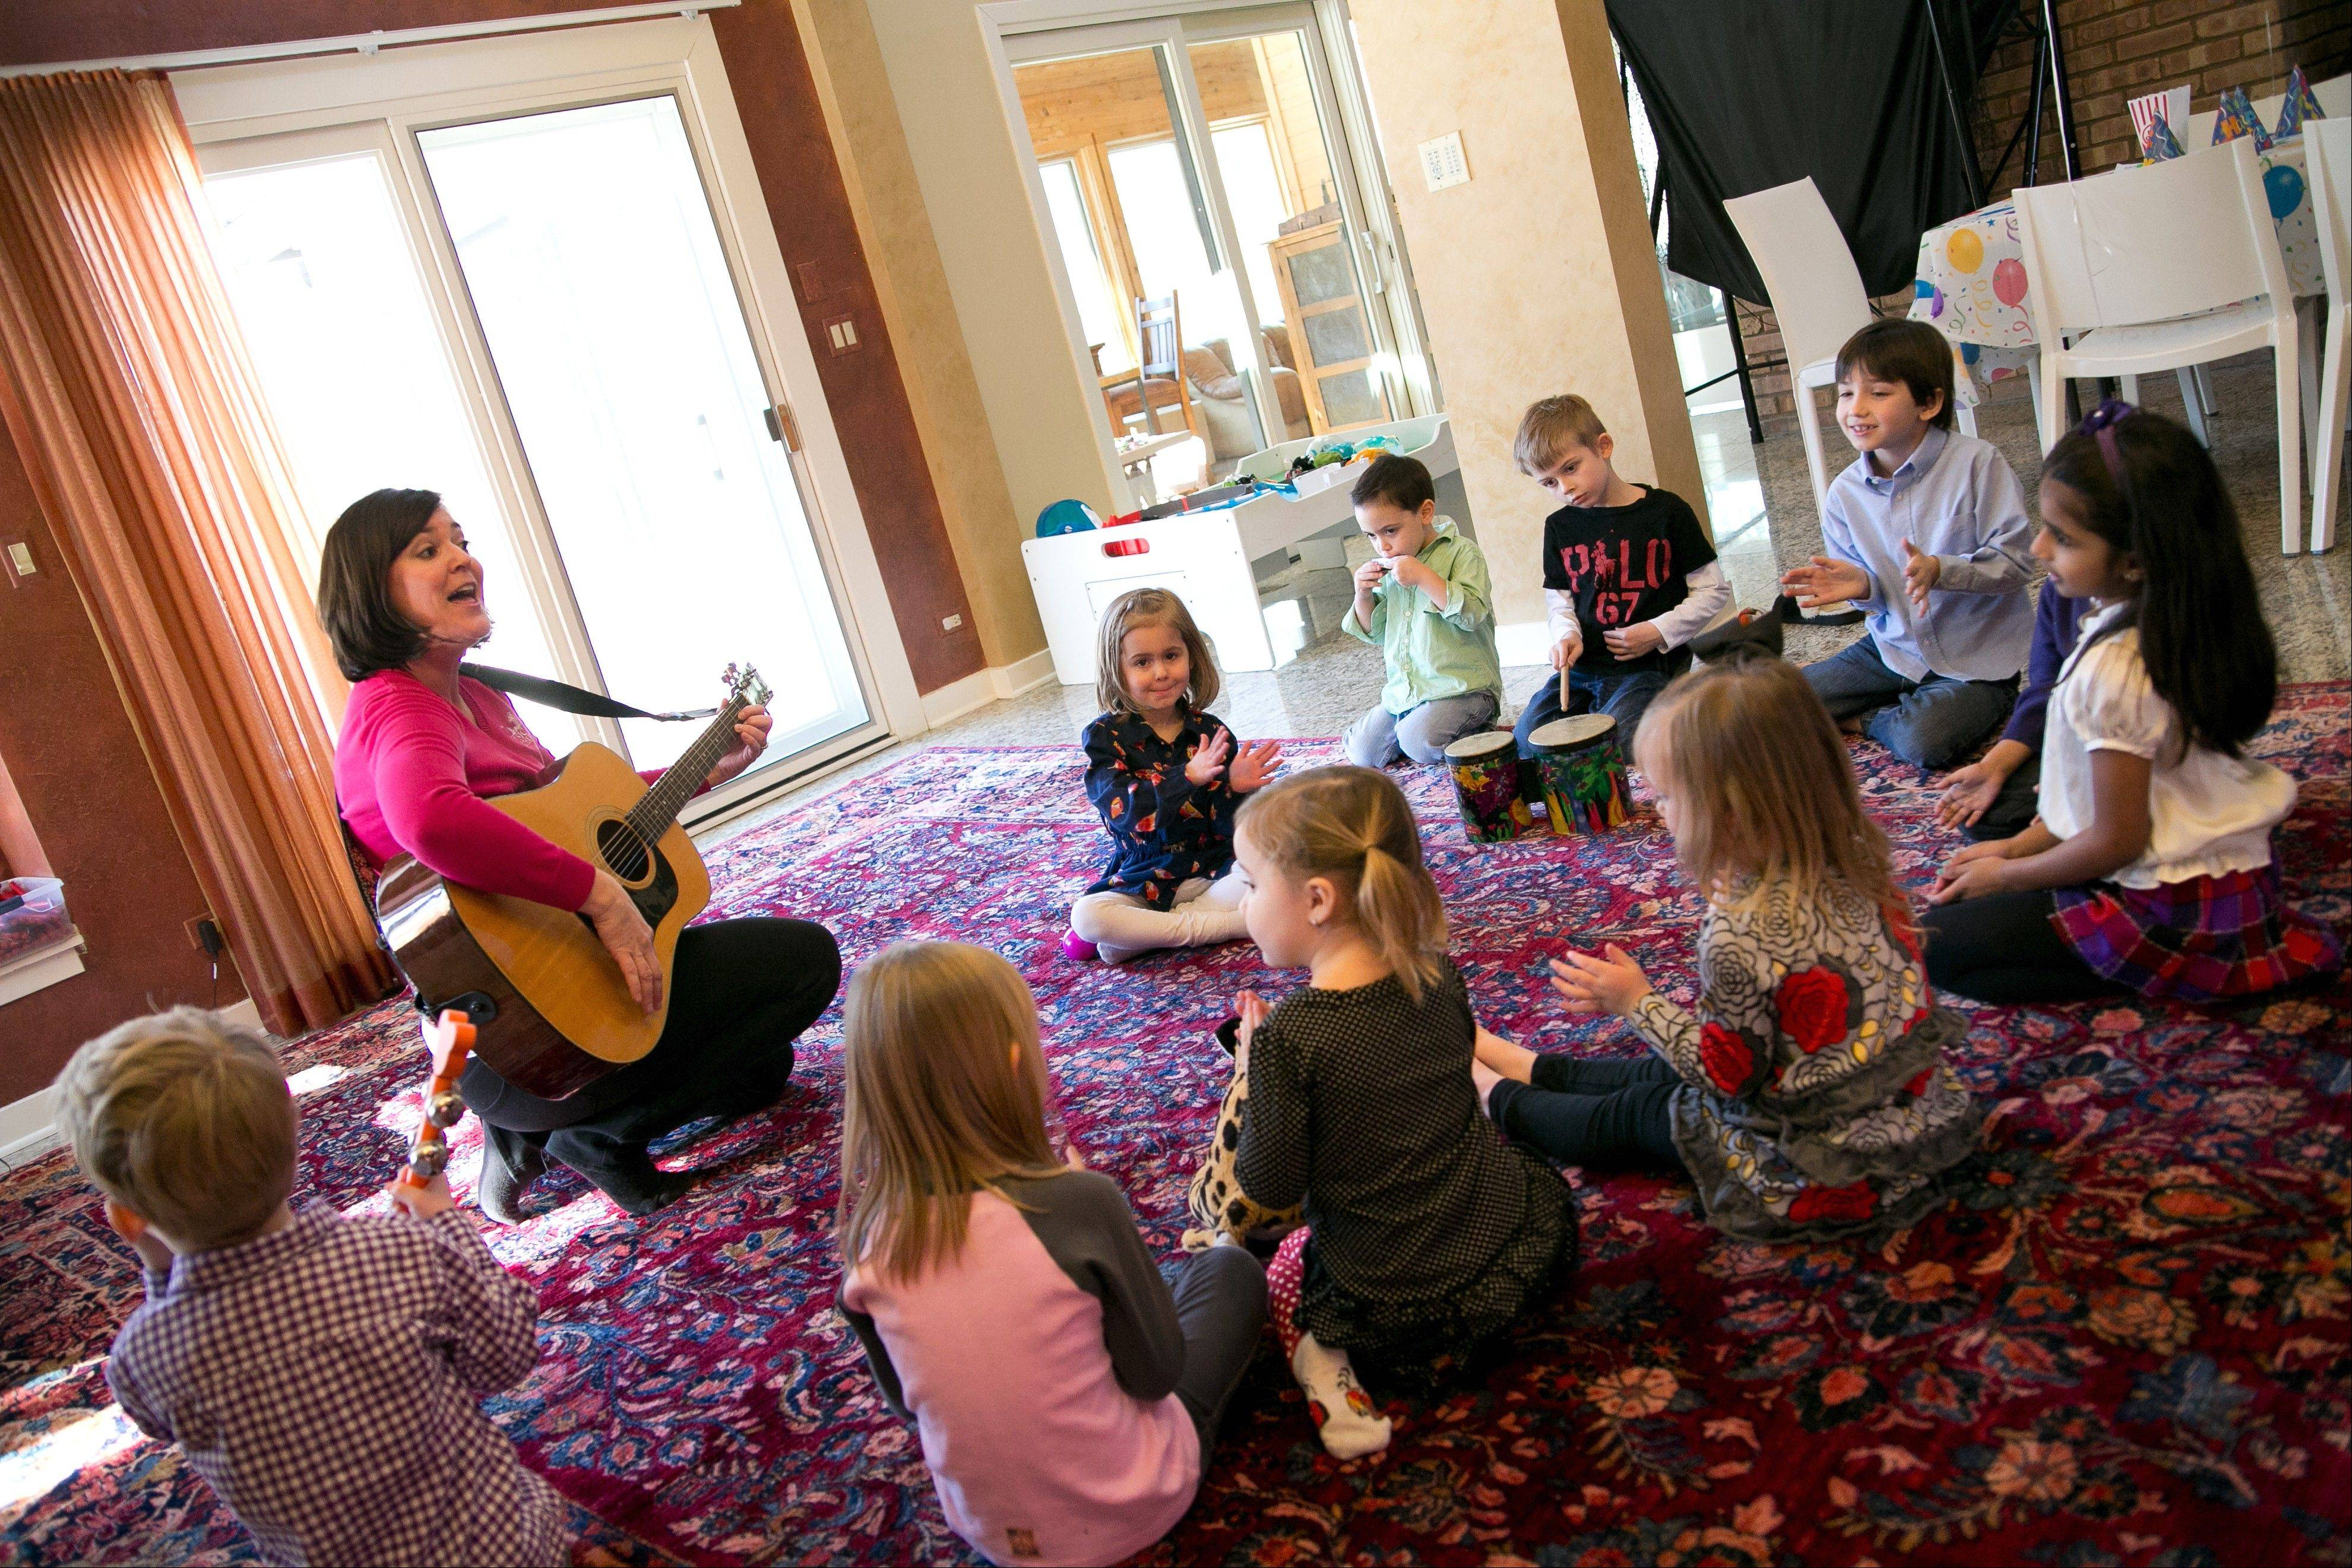 Miss Christy Music will keep the kids entertained and dancing to the music at their birthday party. Miss Christy provides instruments and props so everyone can join in the music-making.